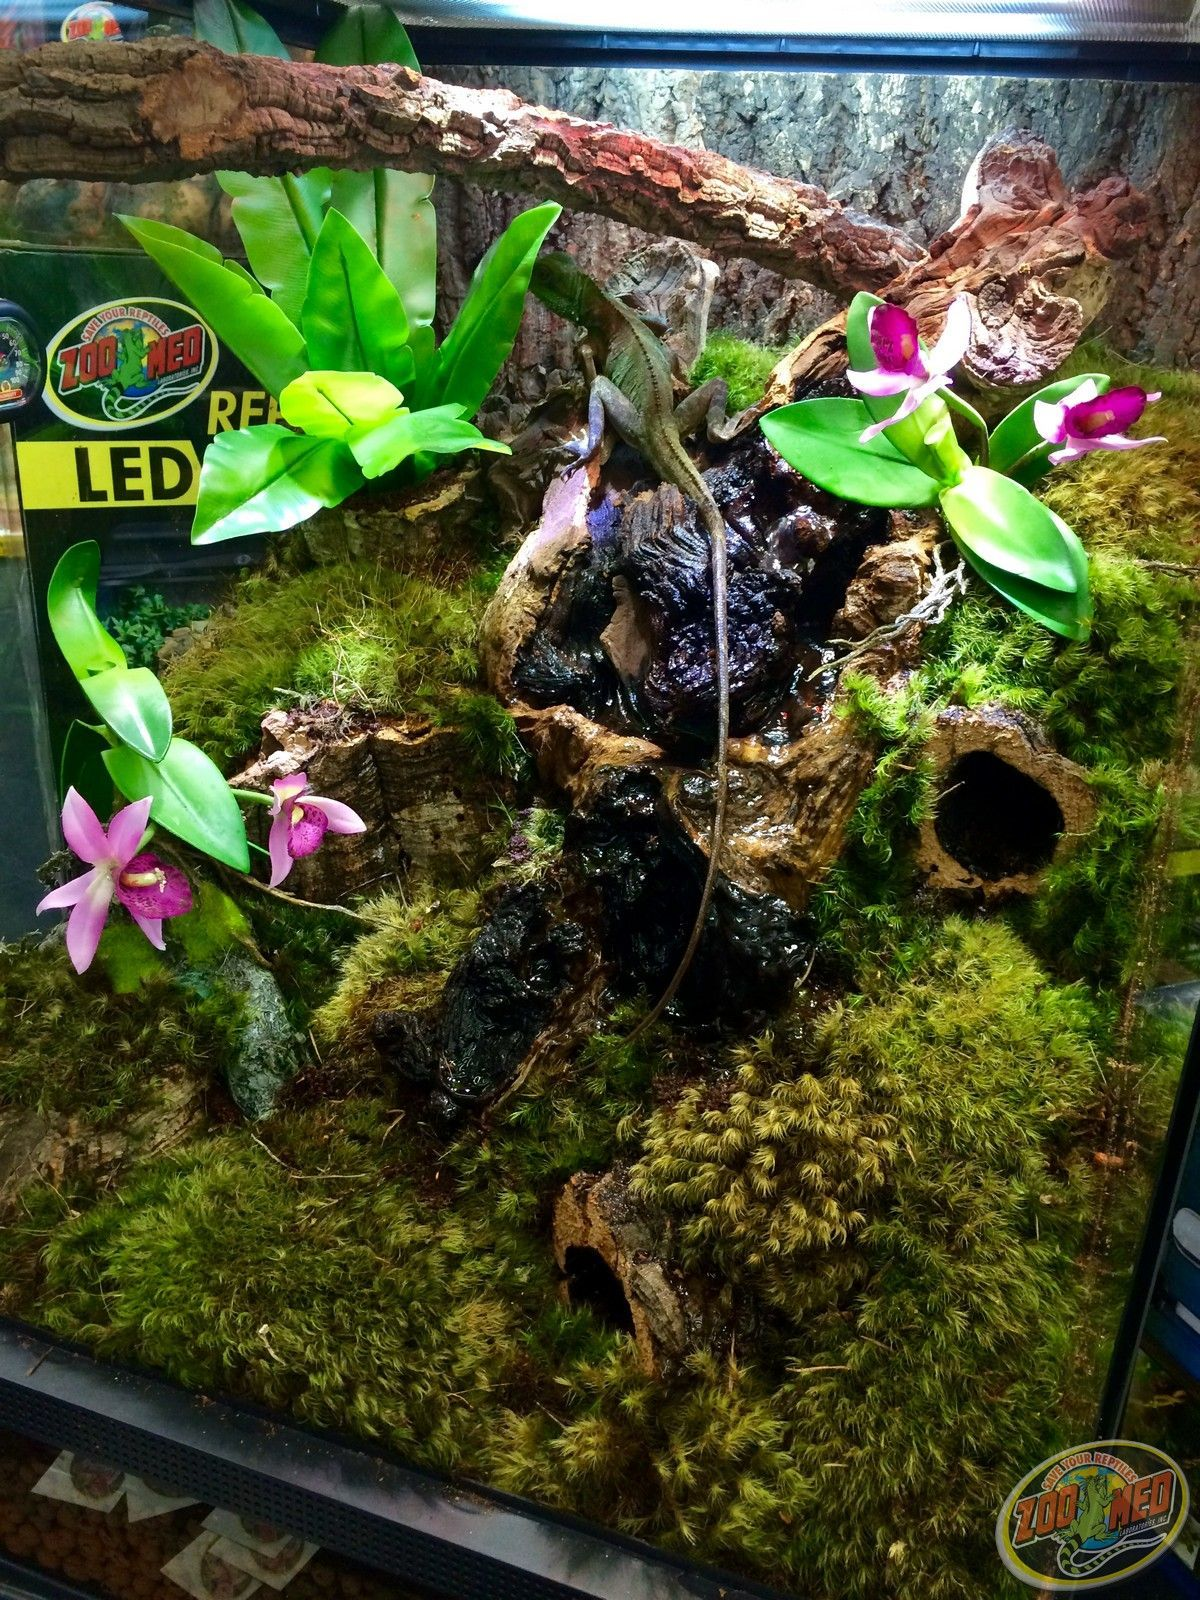 Terrarium for tropical plants like orchids lizards and frogs